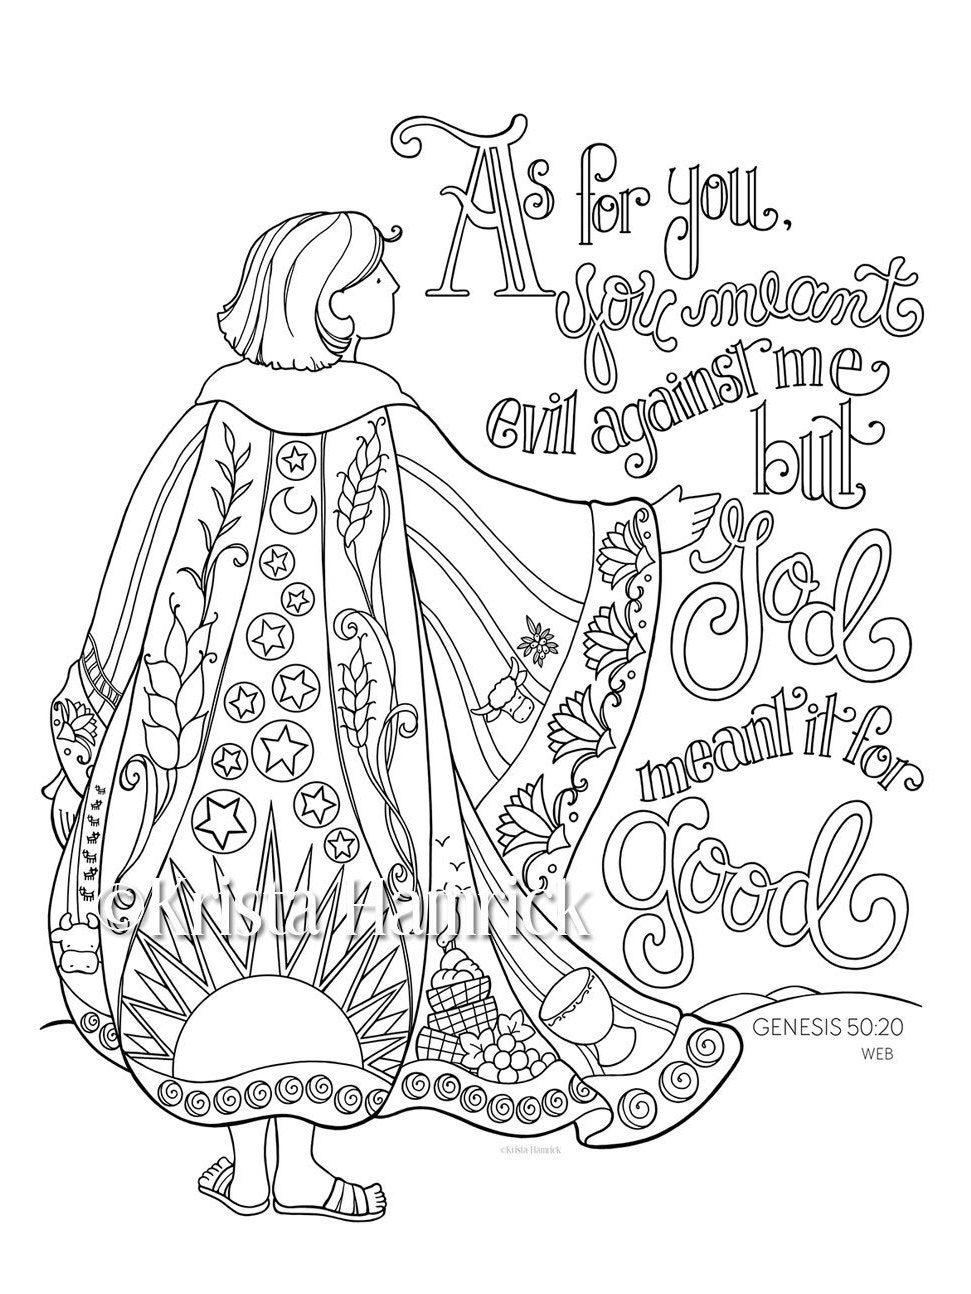 Joseph 39 s Coat of Many Colors coloring page 85X11 Bible